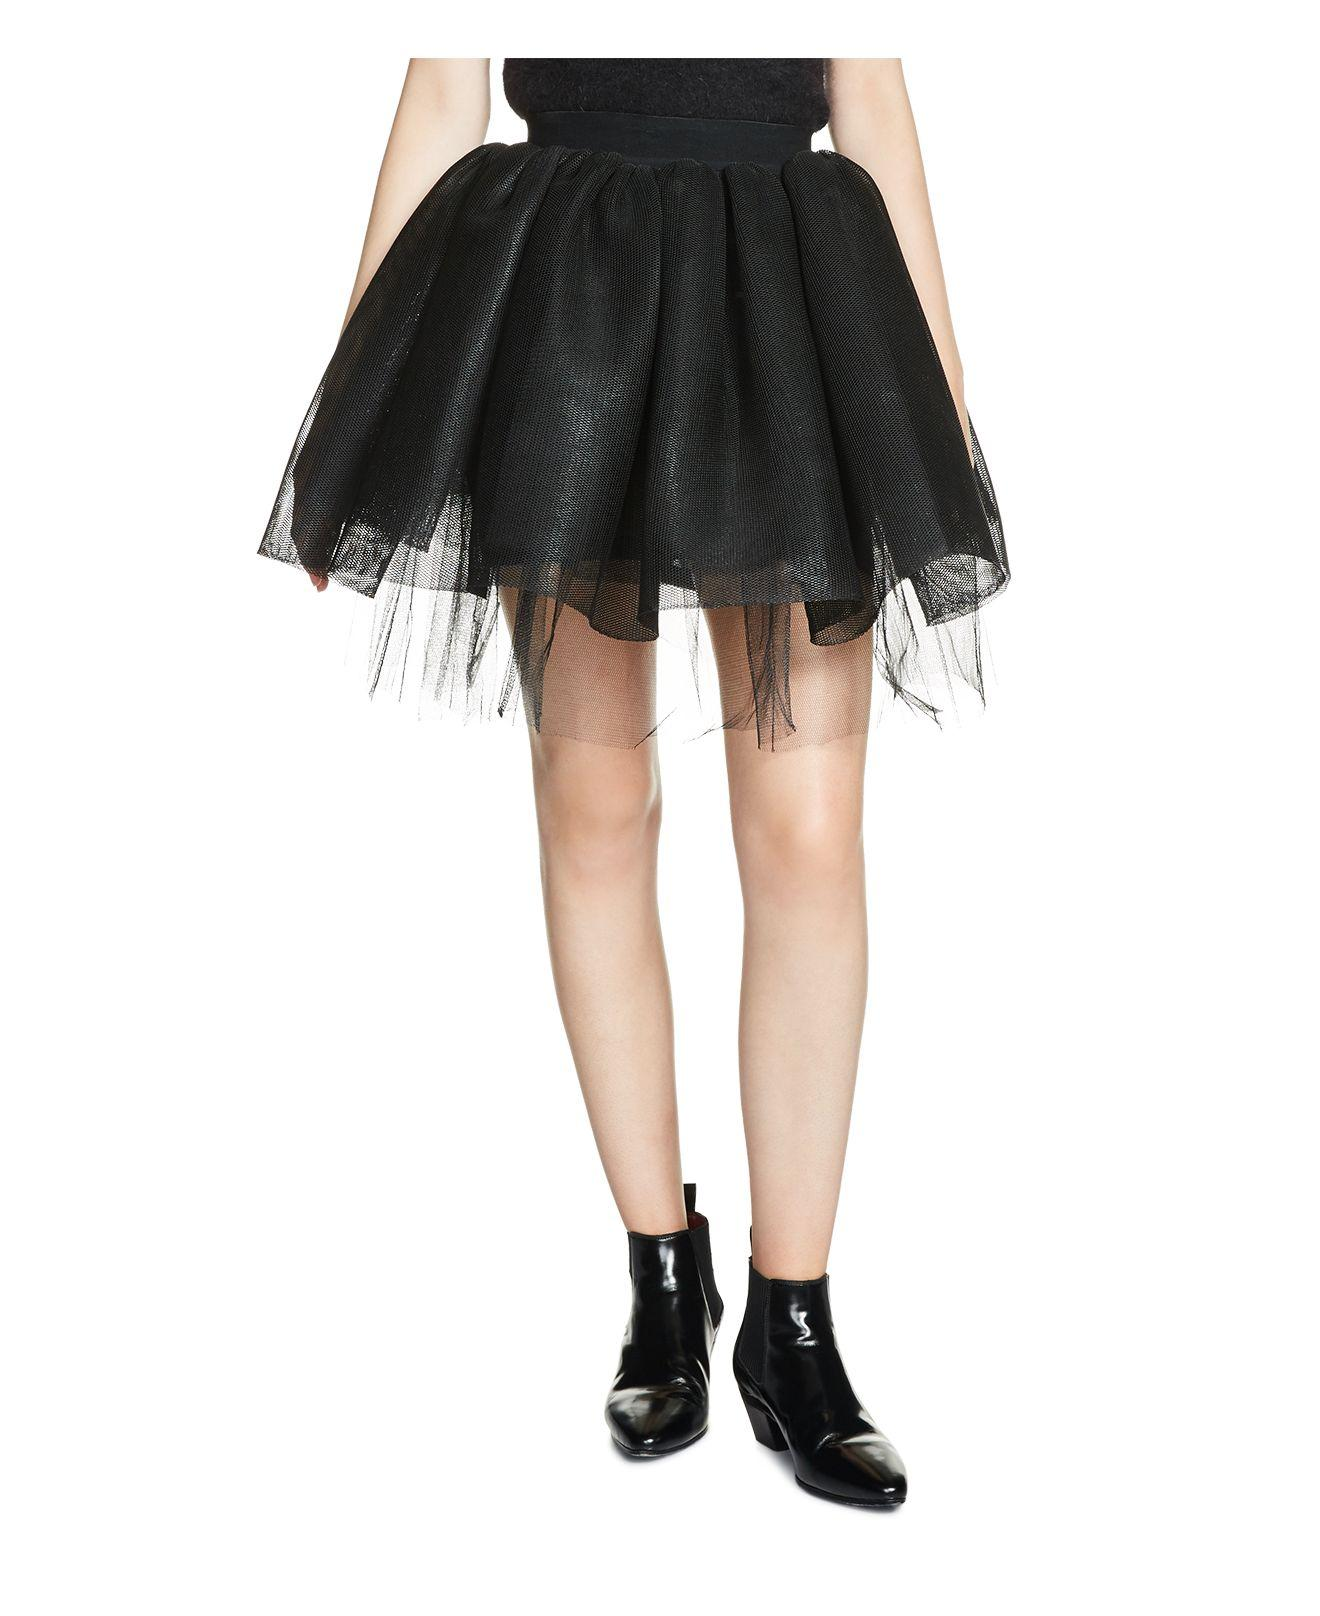 50f697736 Gallery. Previously sold at: Bloomingdale's · Women's Tulle Skirts